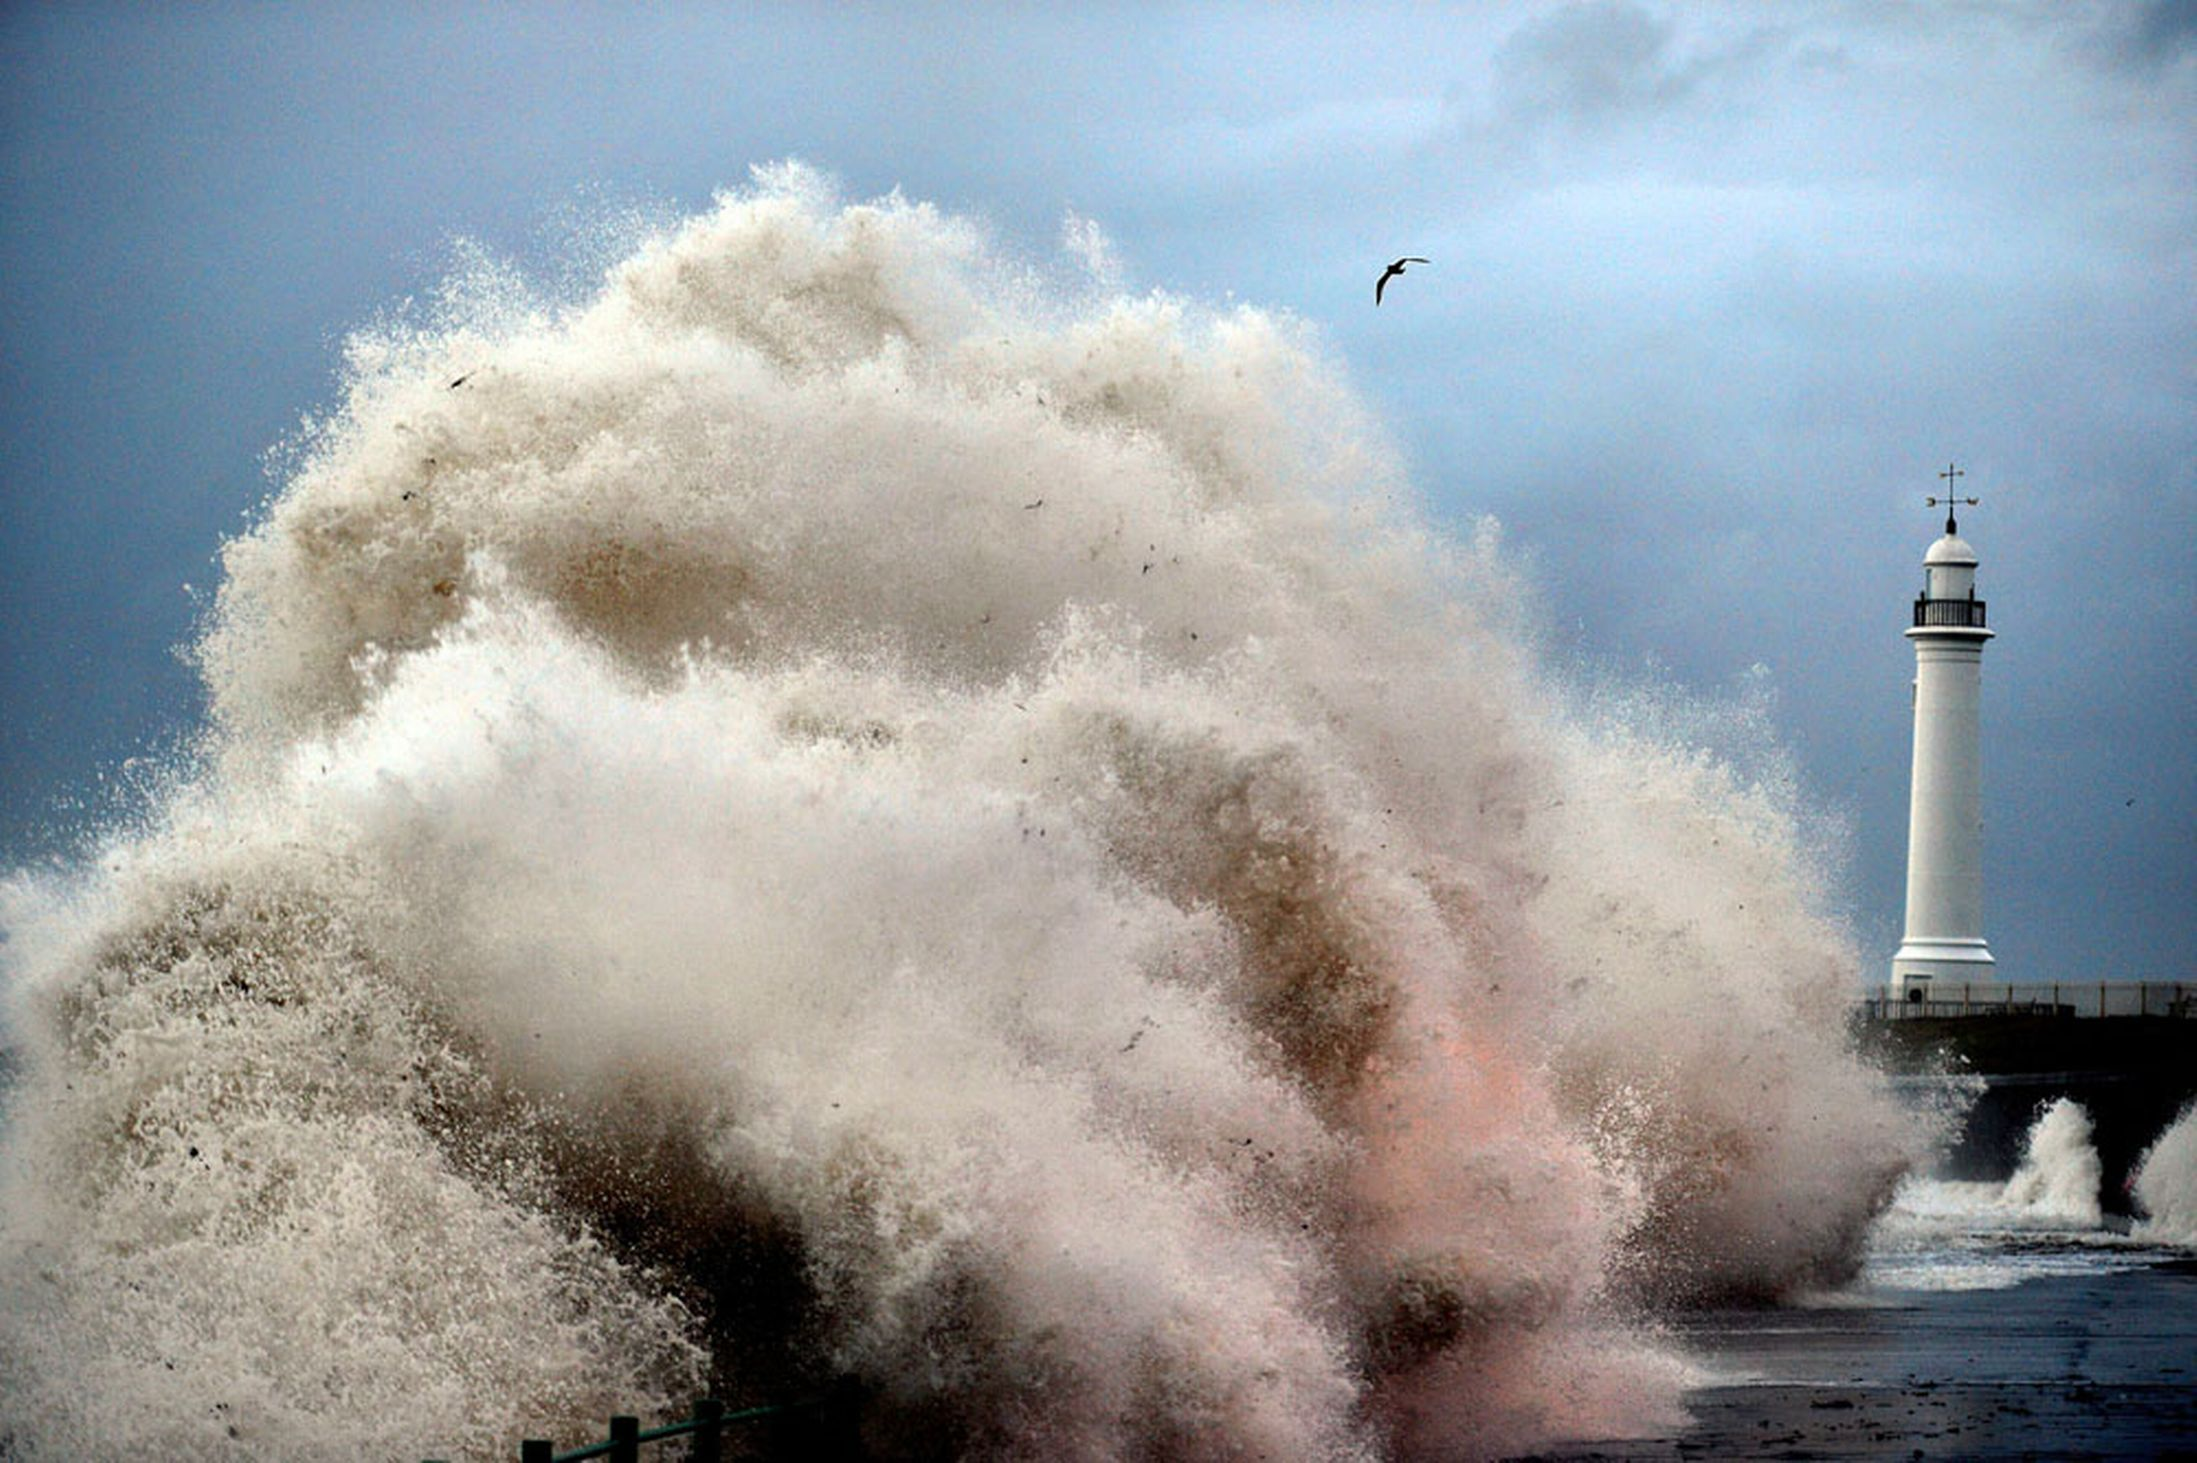 Strong-winds-whip-up-huge-waves-battering-the-coast-at-Seaburn-near-Sunderland-10th-October-2641147